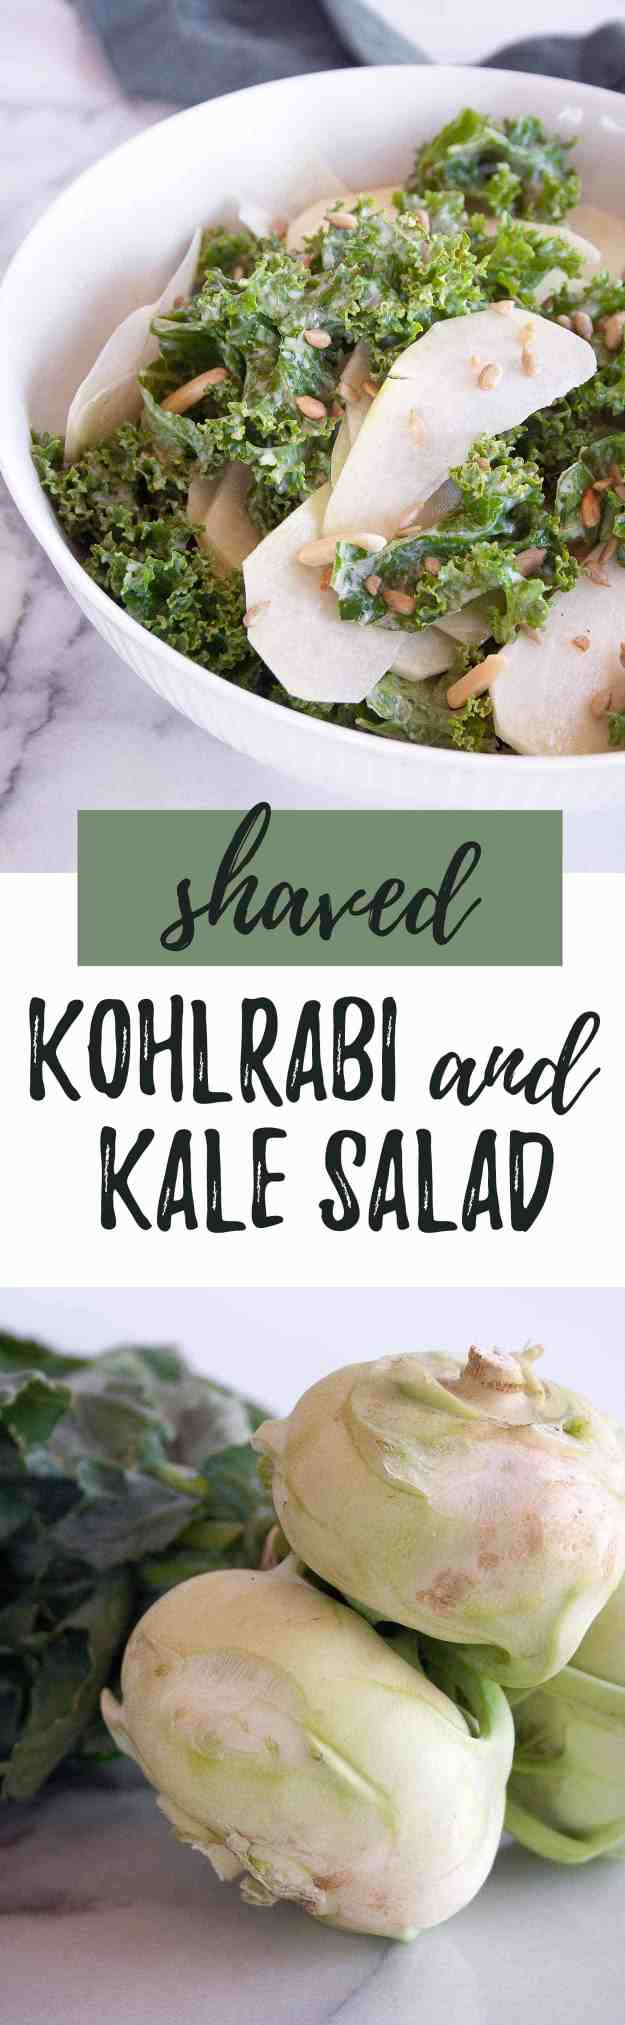 Shaved Kohlrabi and Kale Salad with Lemon-Tahini Dressing | kohlrabi recipe, raw, spiralized, easy, healthy, gluten free, dairy free, paleo, vegan, whole30 | hungrybynature.com